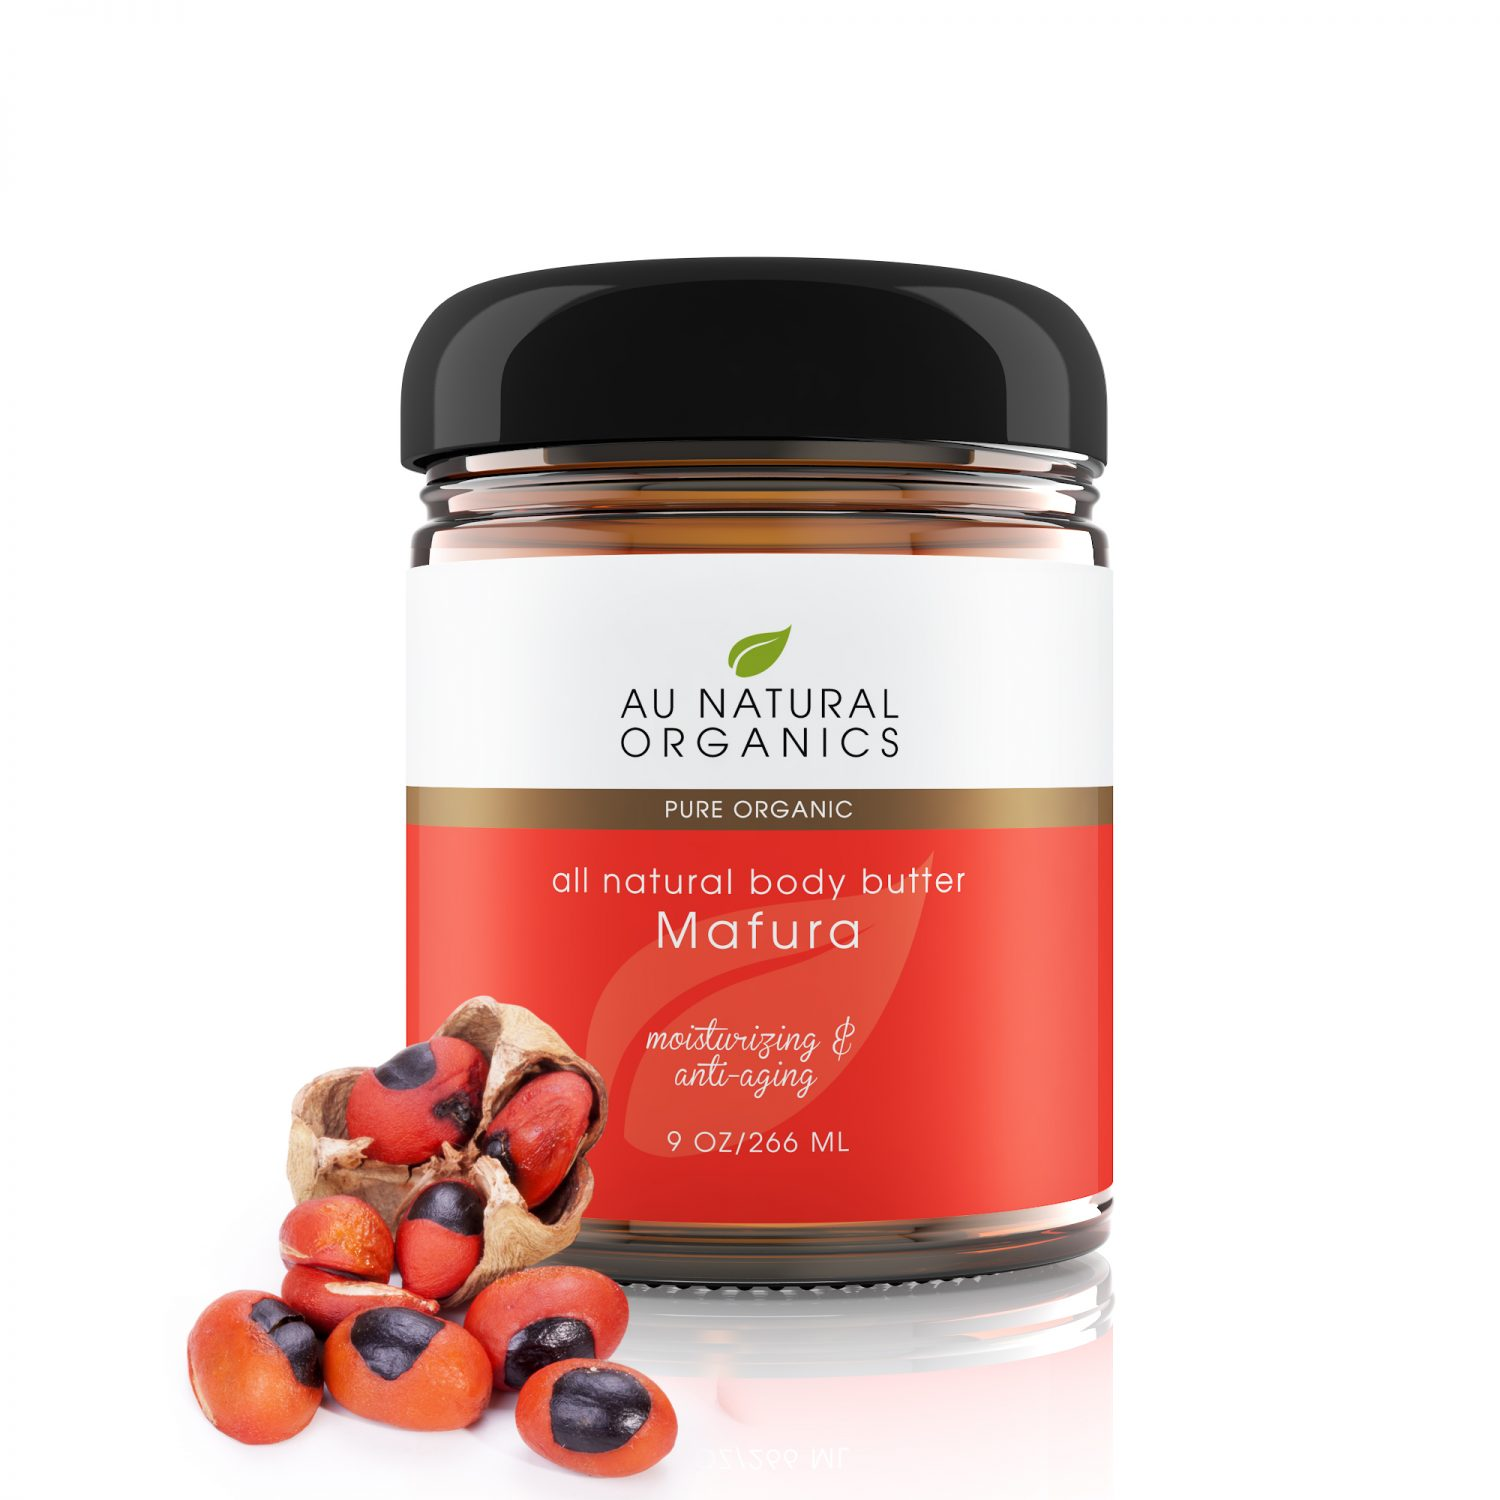 mafura body butter